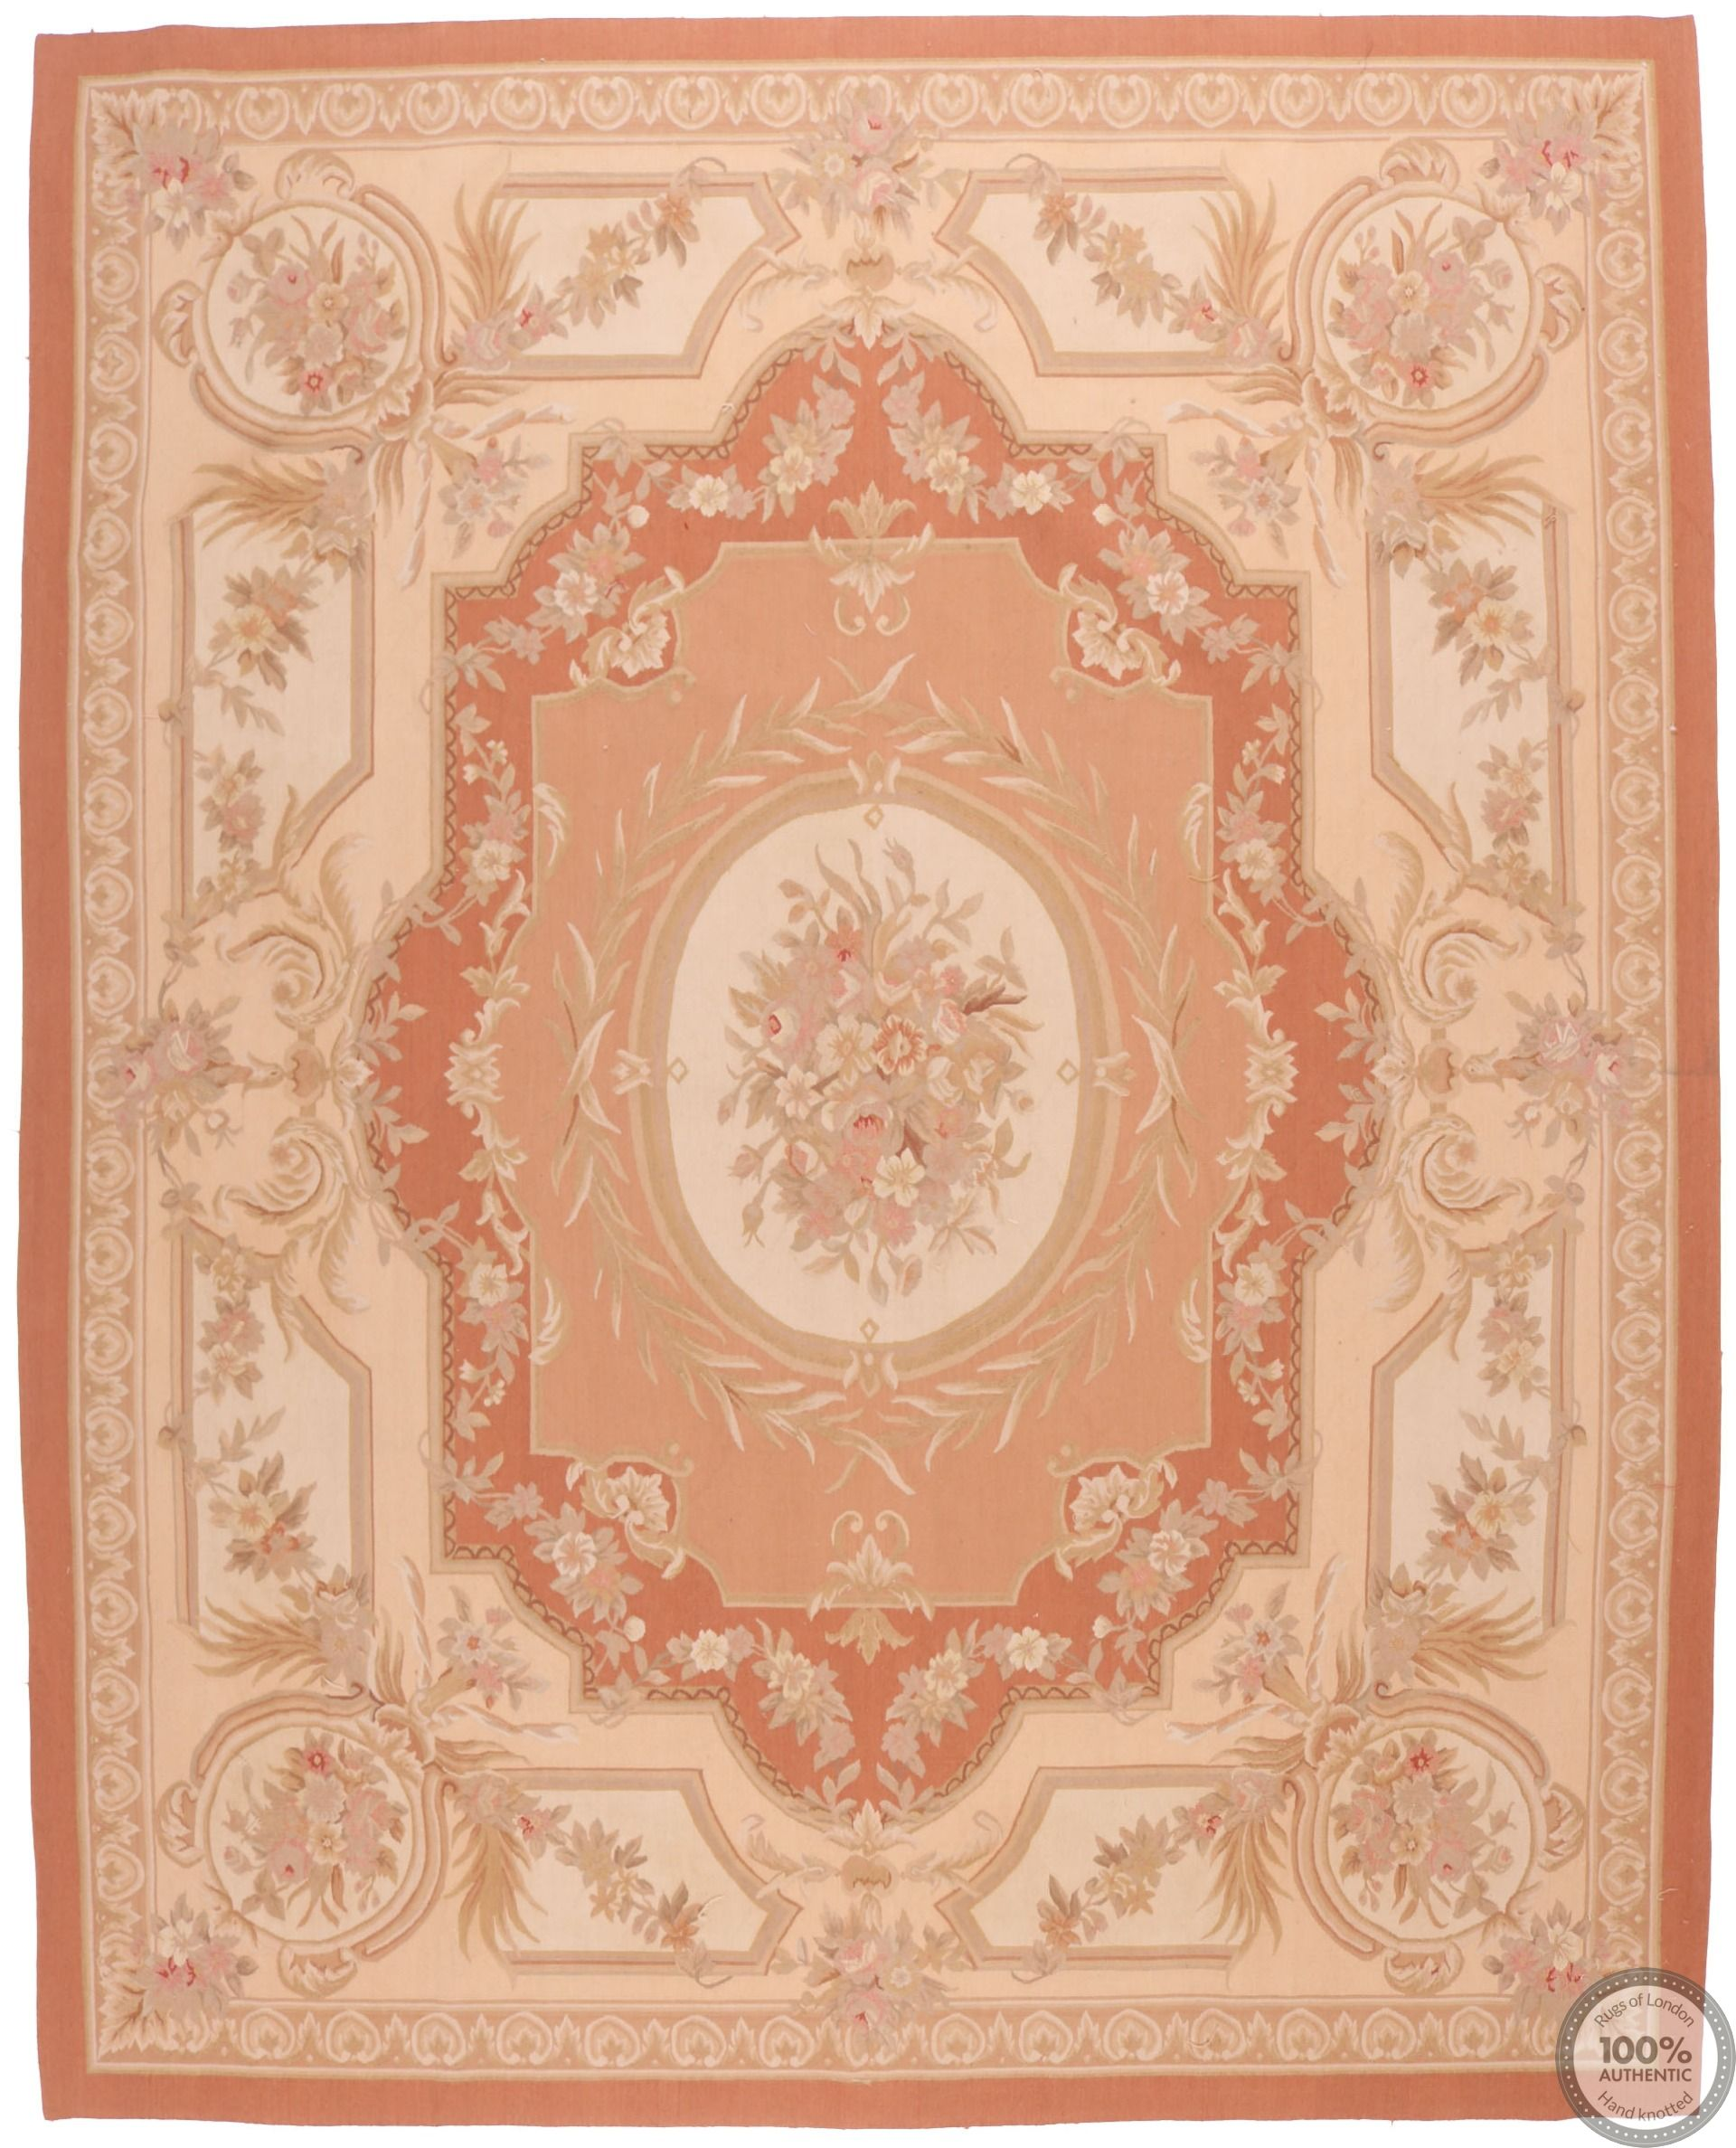 French Aubusson floral design - Design 53